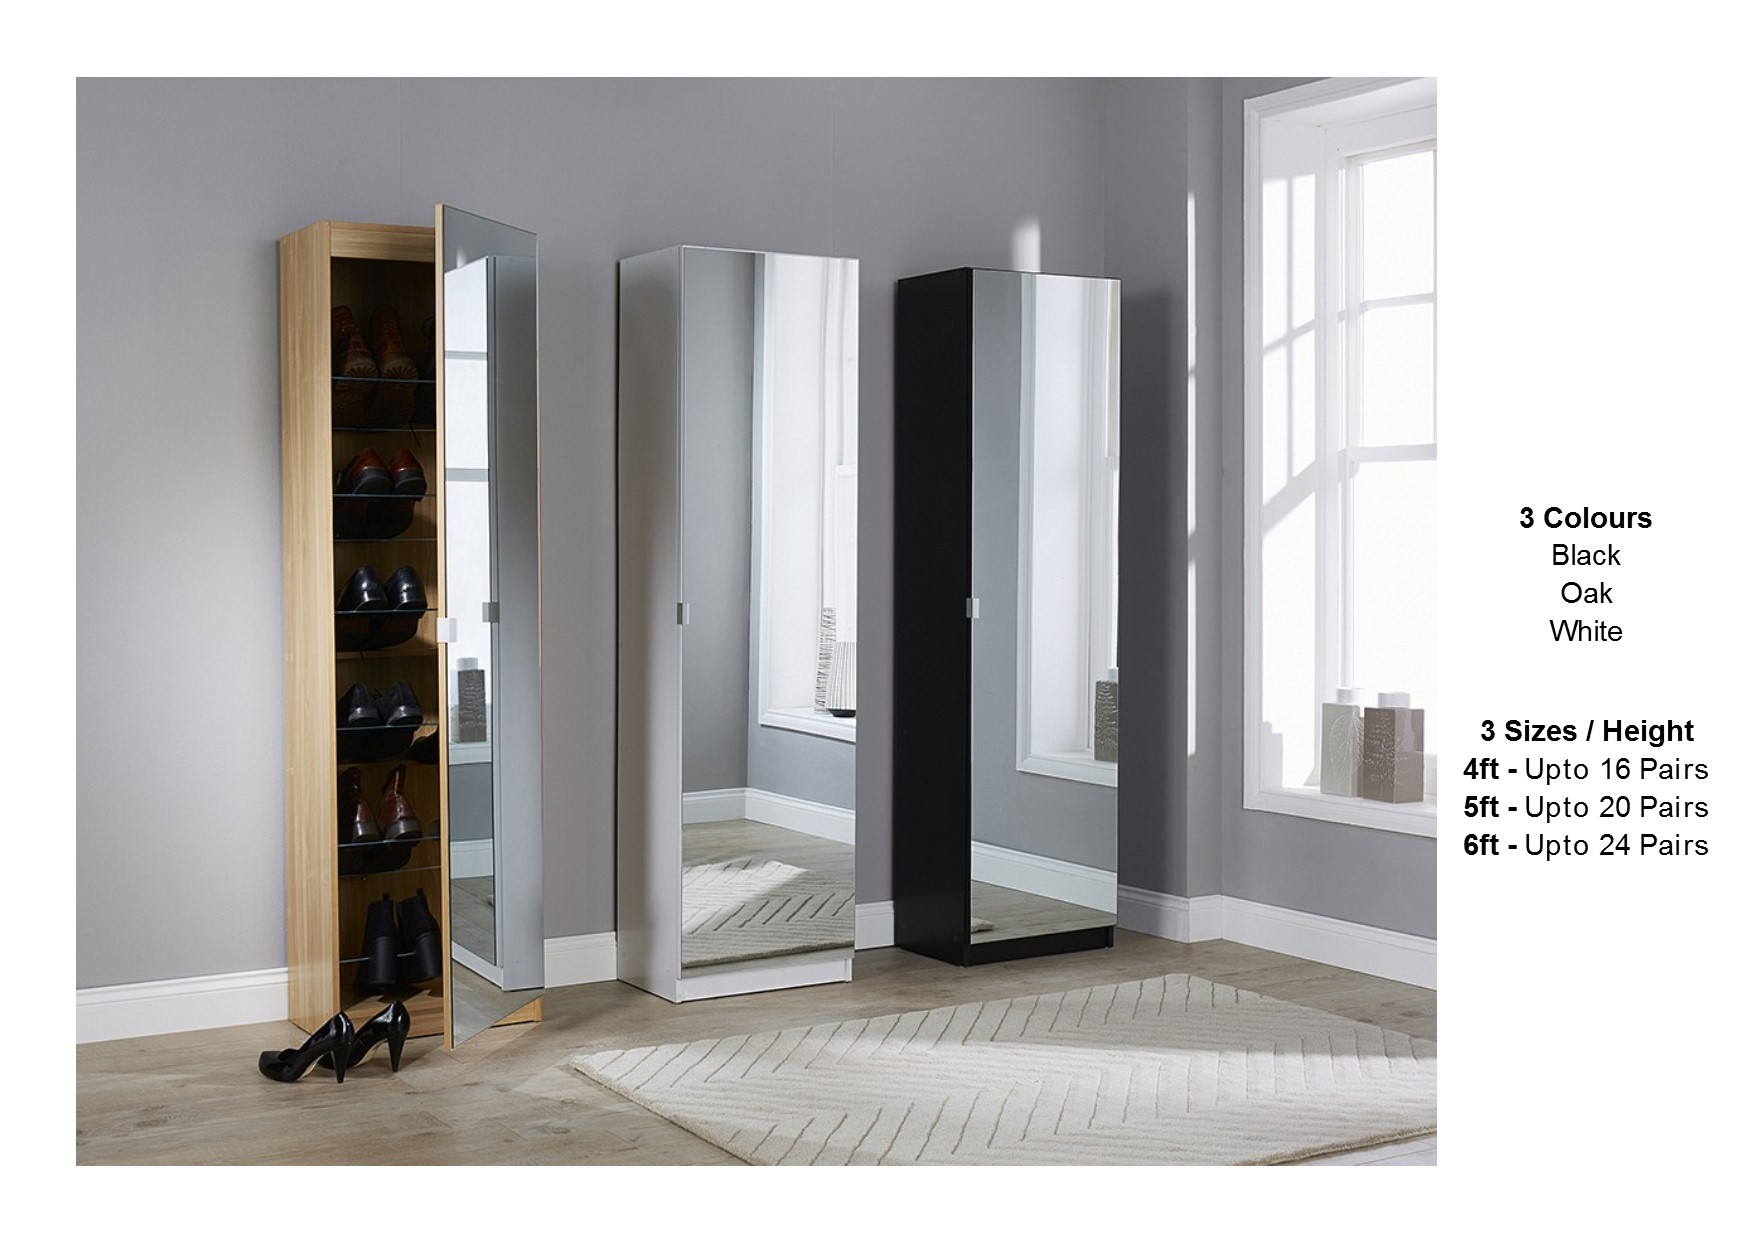 Details About Mirrored Shoe Cabinet Storage Rack Full Mirror 3 Sizes Black White Oak